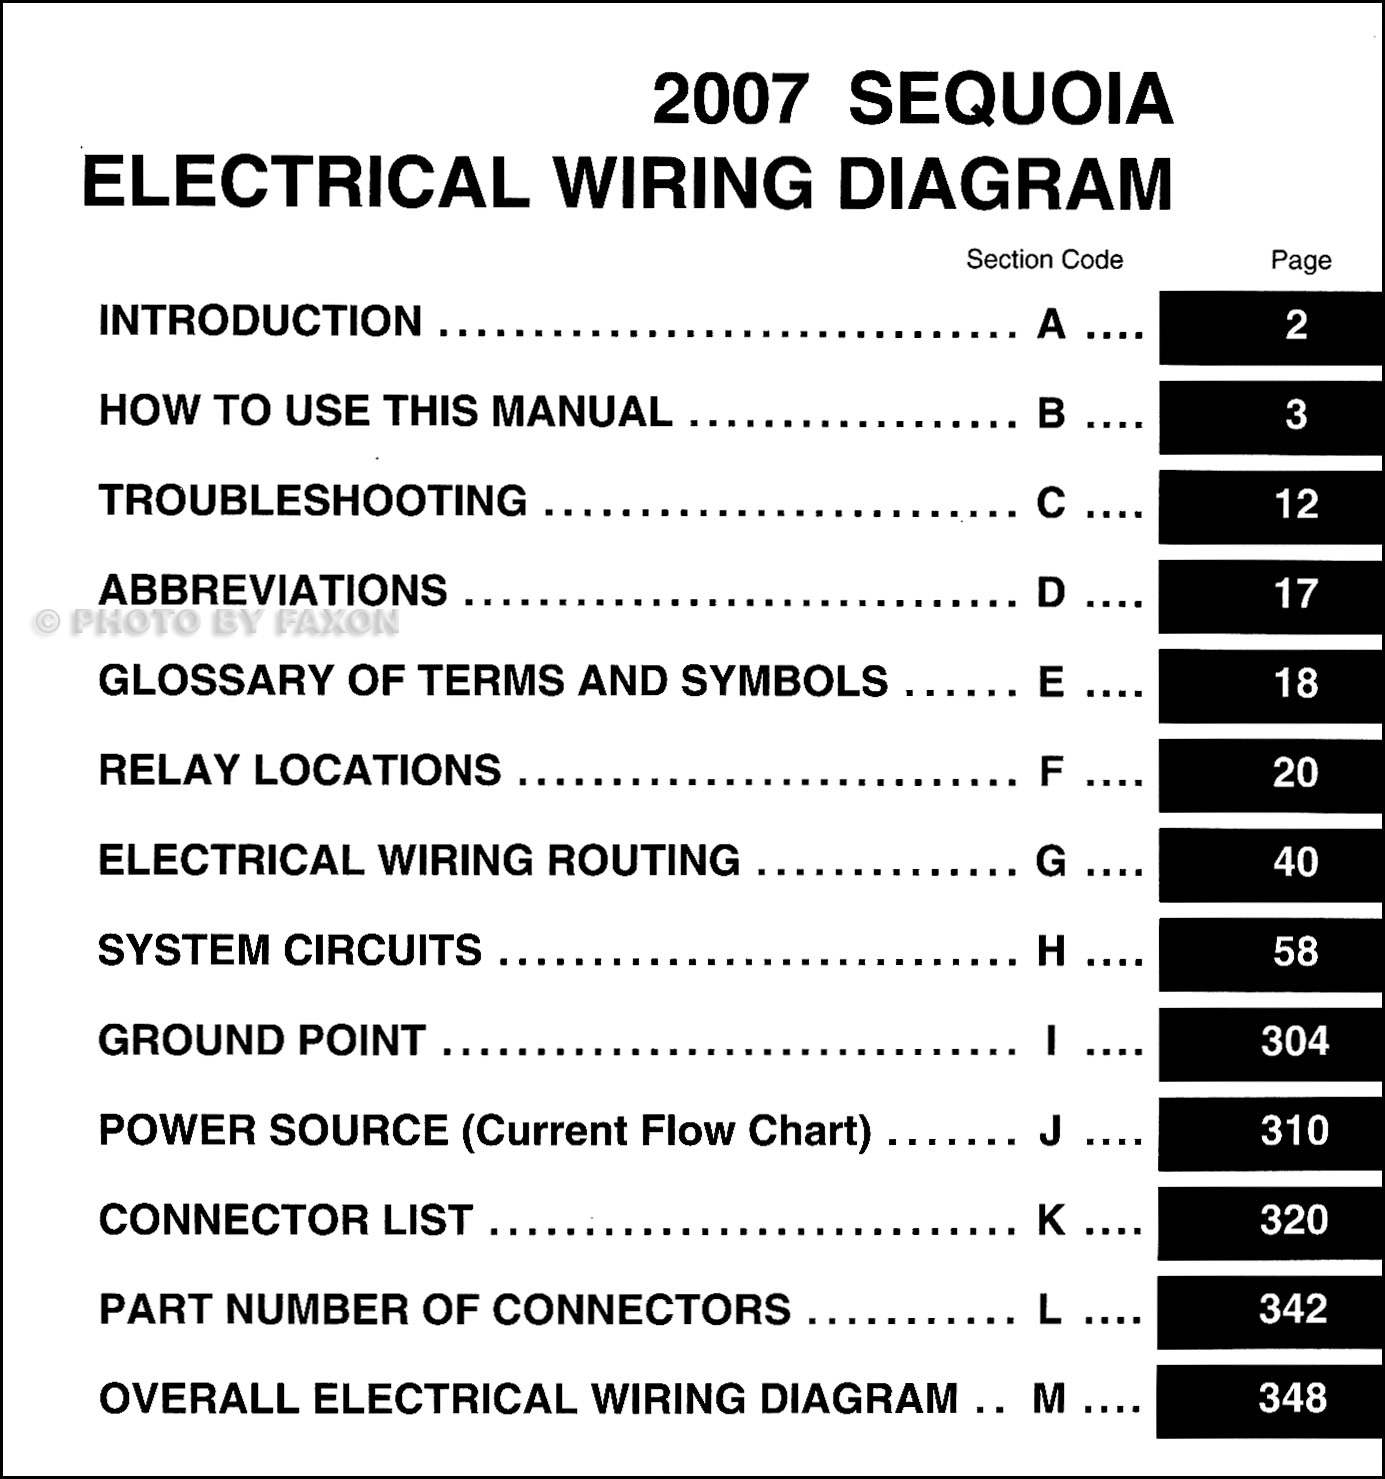 Wiring Diagram For 2007 Toyota Tundra Content Resource Of Suzuki Xl7 Fuse Box Sequoia Manual Original Rh Faxonautoliterature Com 2000 Generator 2006 Instrument